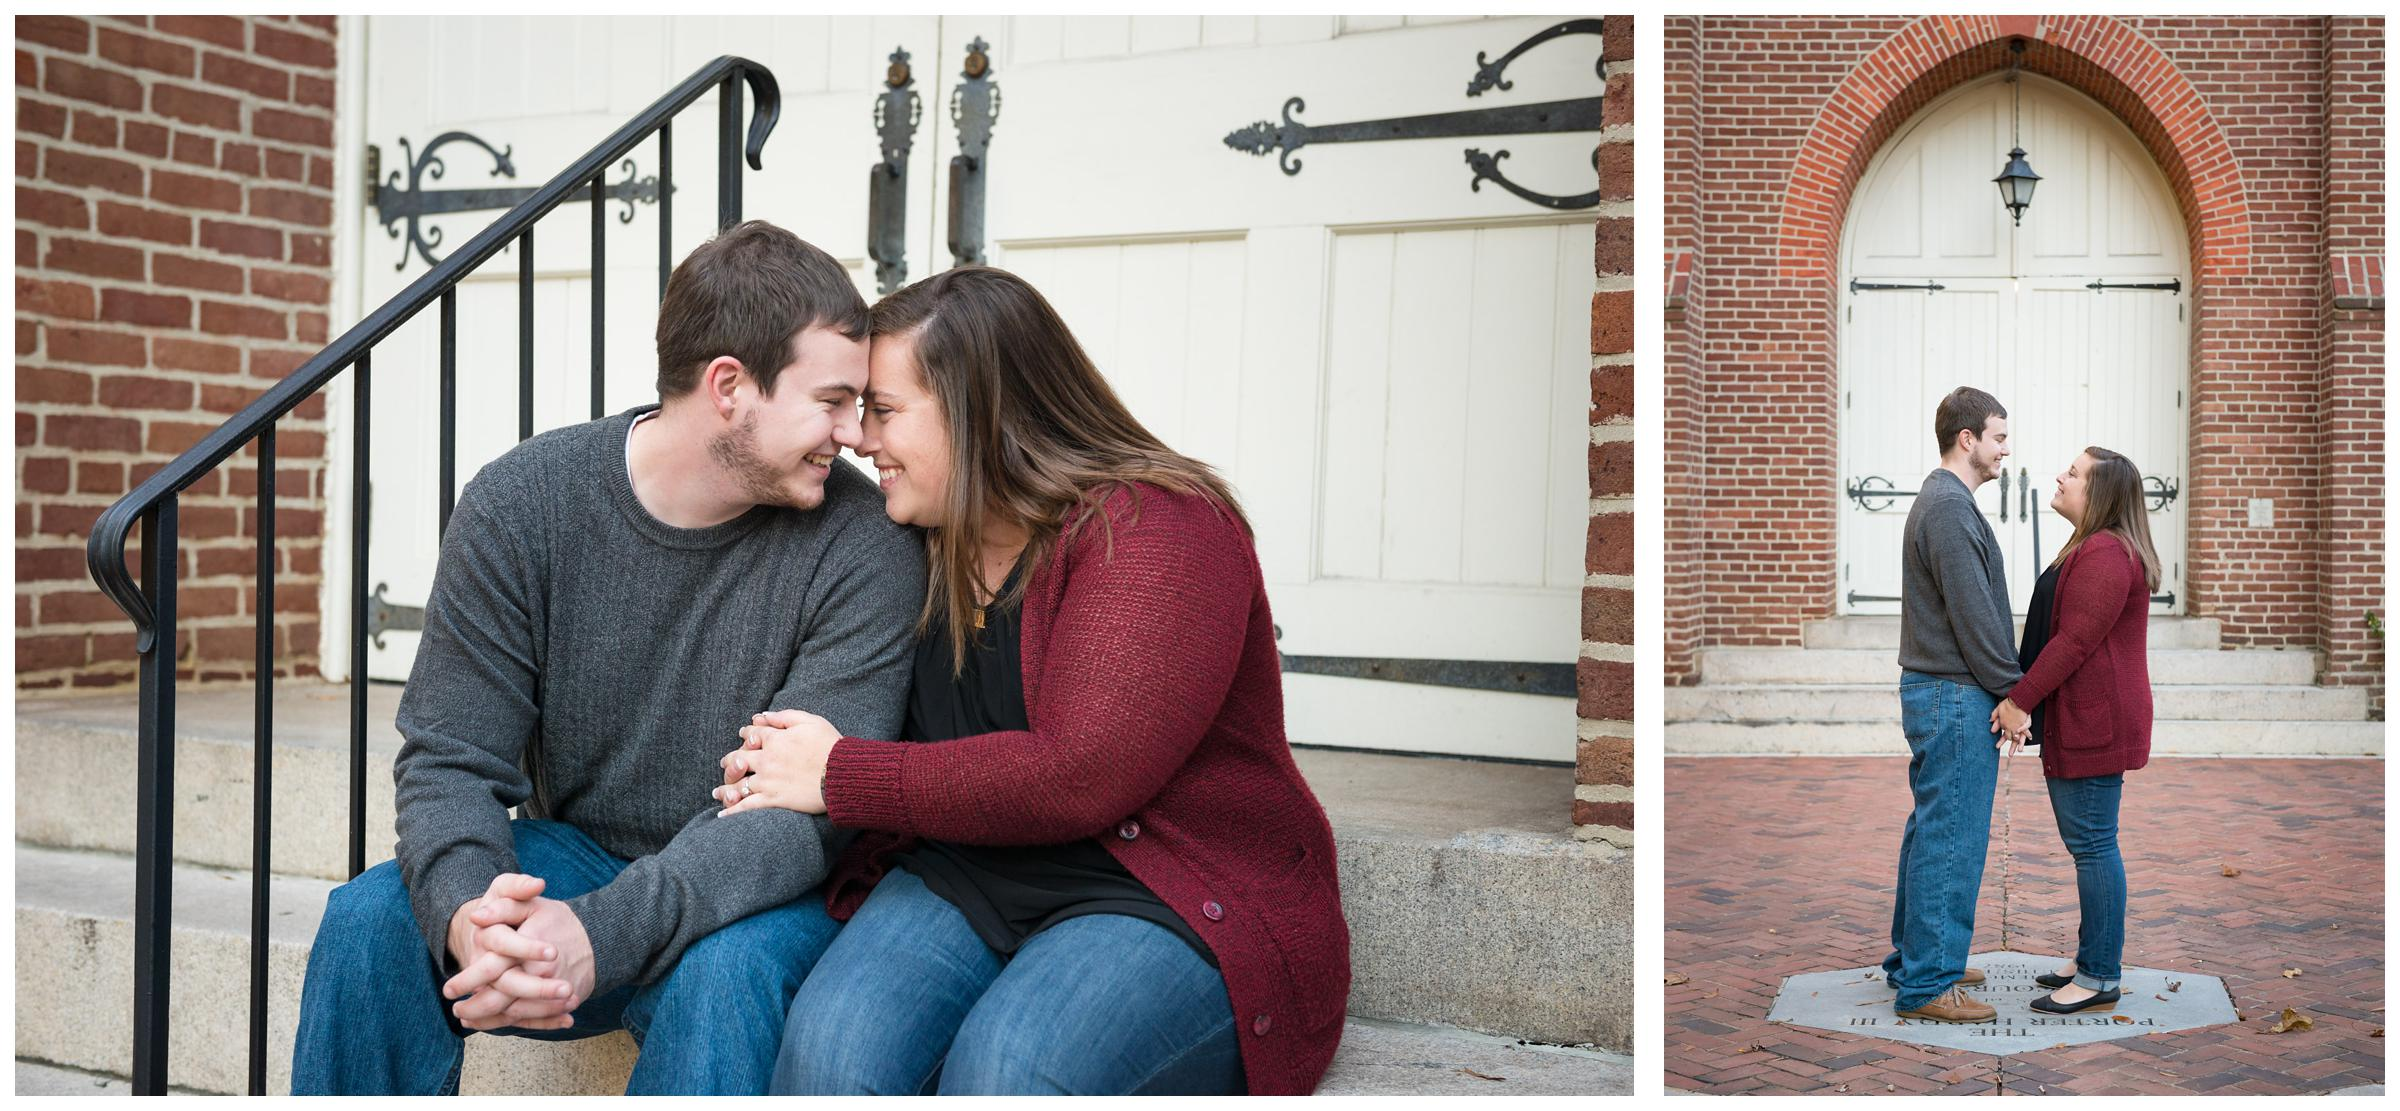 Engagement photos on the campus of Randolph-Macon College in Ashland, Virginia.